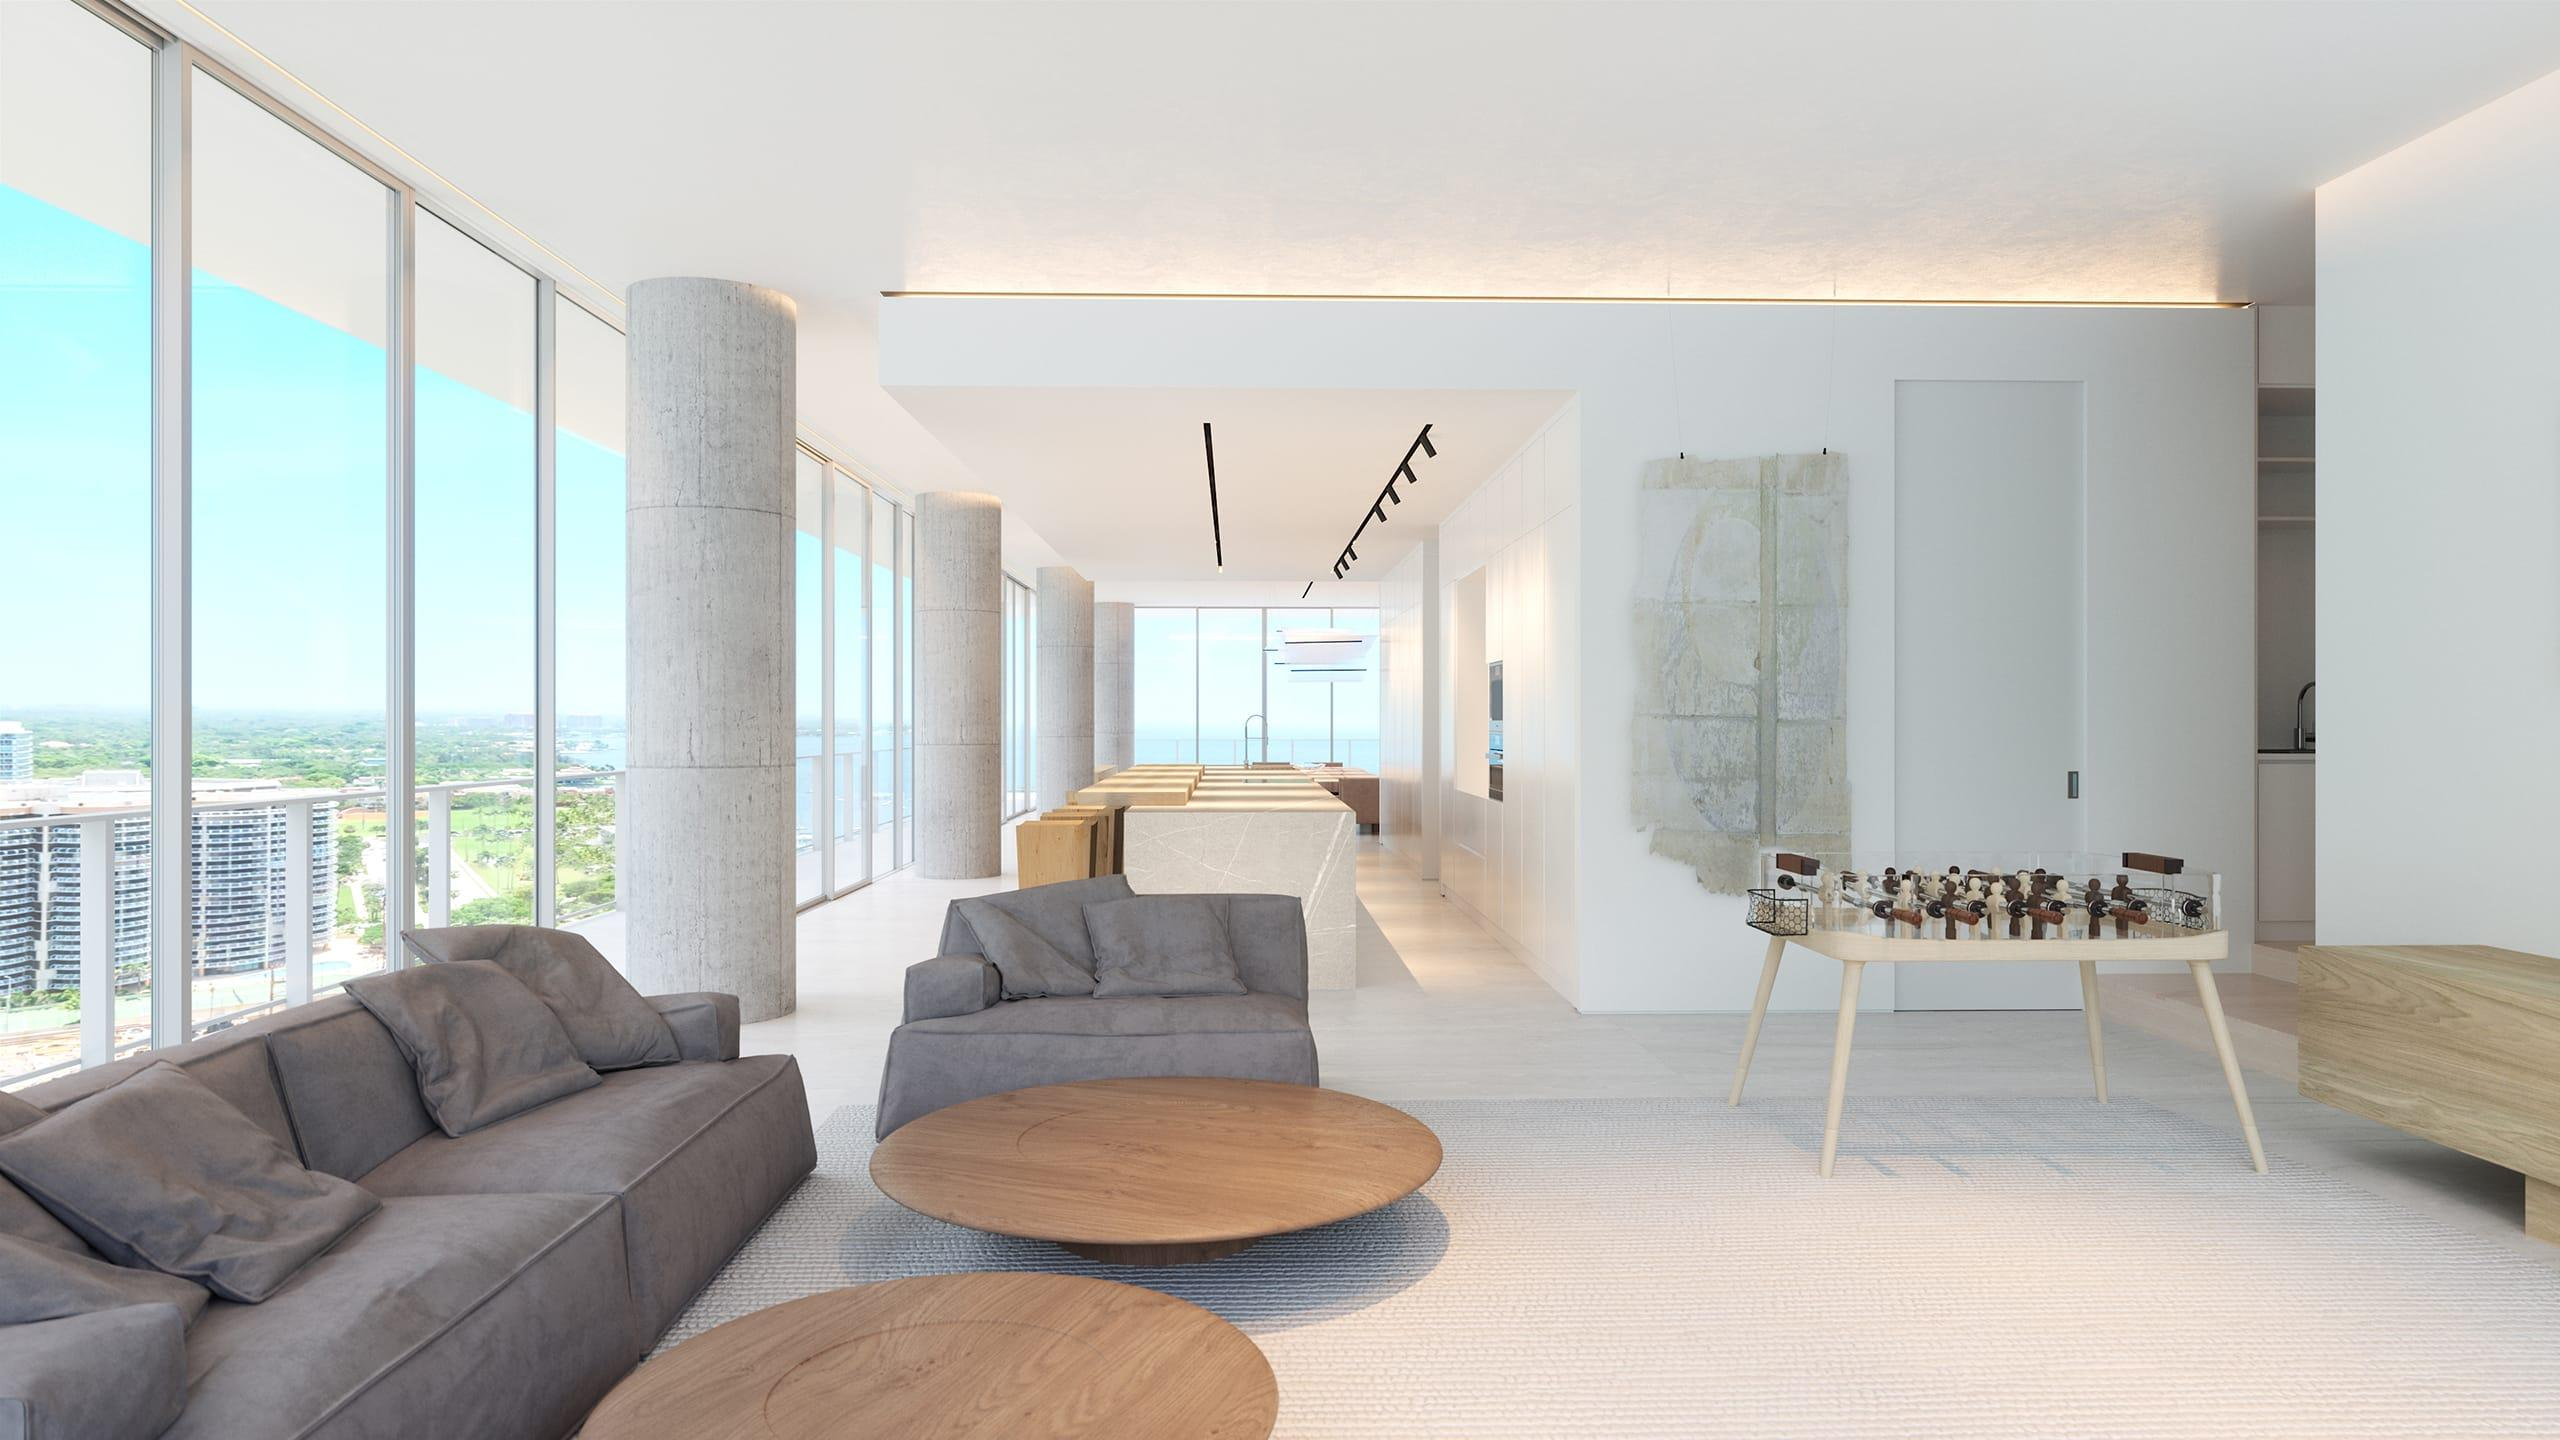 Grove at Grand Bay family room render_2k